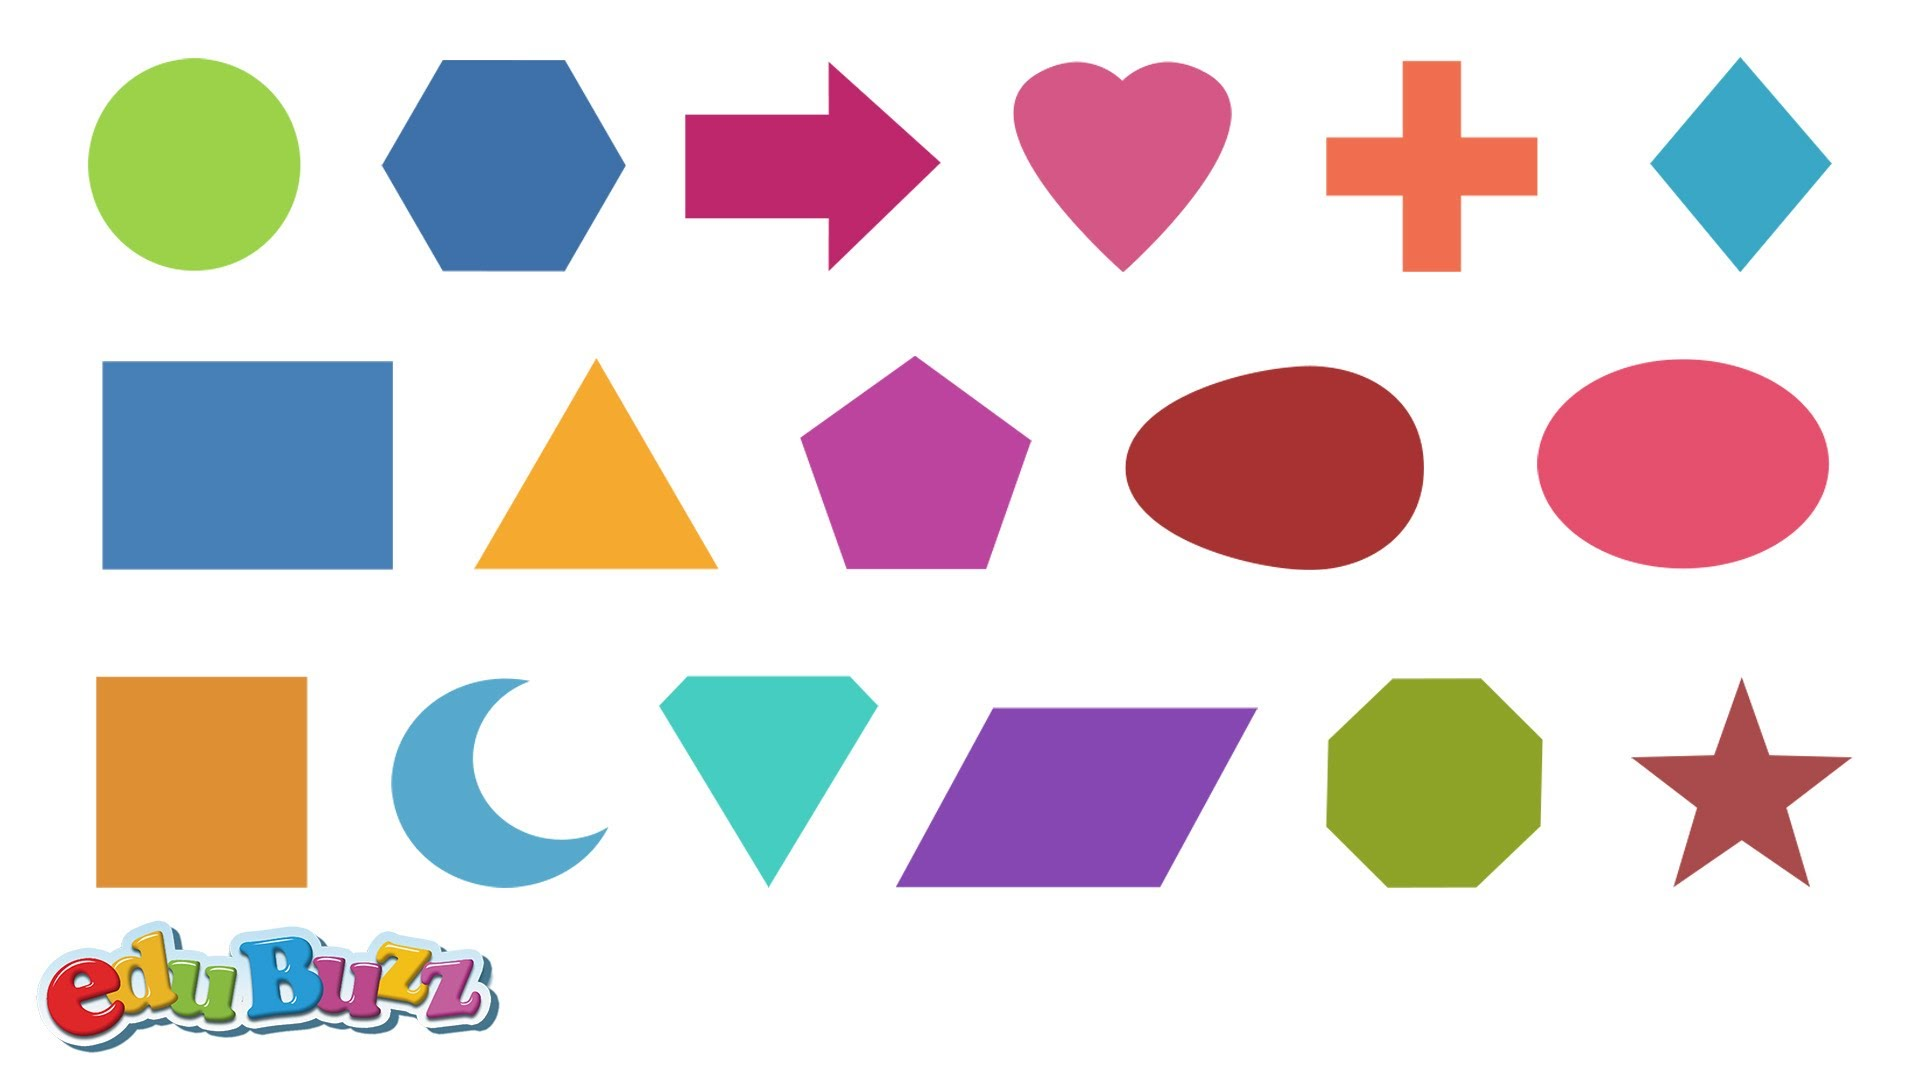 Heart-shaped clipart 2d shapes Shapes Shapes about 2d about